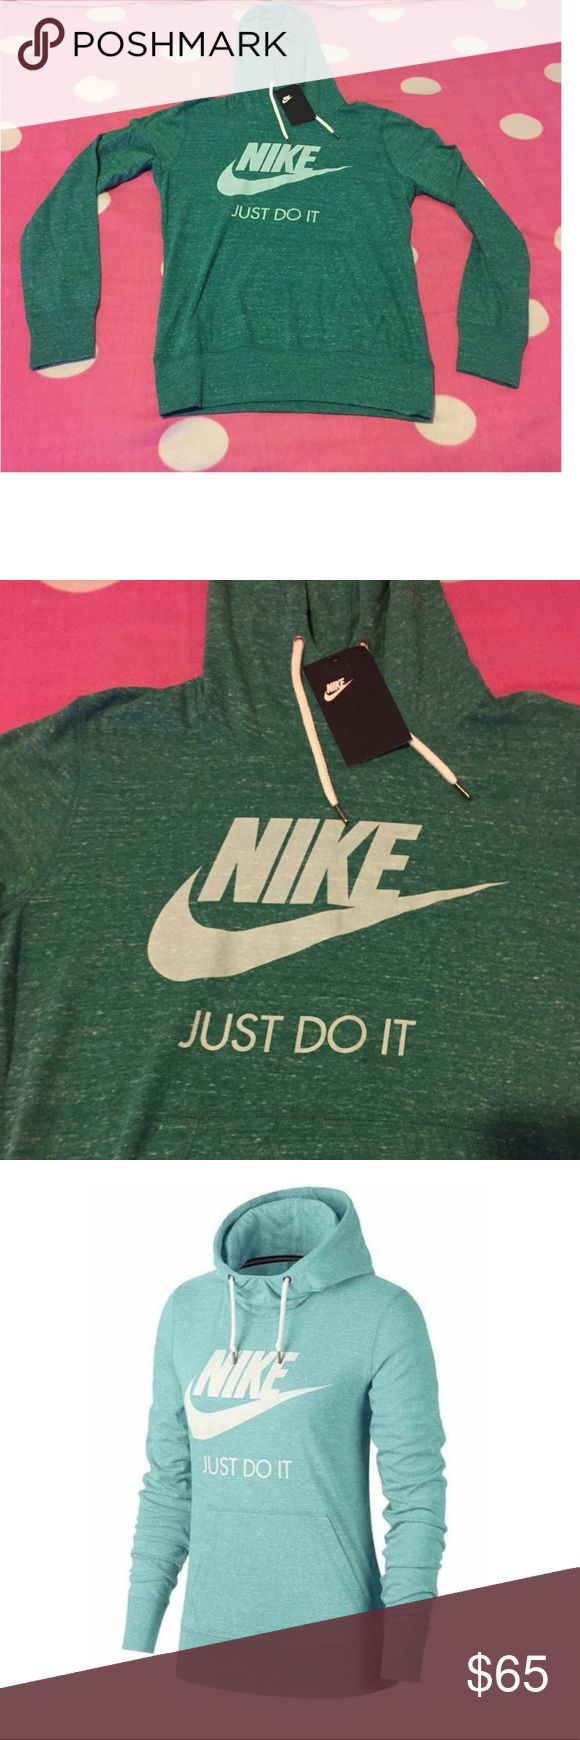 🔥⭐️Nike Pullover Hoodie🎊🎉 ⤵️PLEASE READ⤵️ No Trades. No Holds.   Please submit all offers via offer button.  Brand new with tags. Size Medium (women's) the last picture is the same exact hoodie in a different color to show fit.   I'm open to reasonable offers   I inspect all my items before I ship them out so please be sure to read descriptions before purchasing to prevent any miscommunication. Nike Tops Sweatshirts & Hoodies